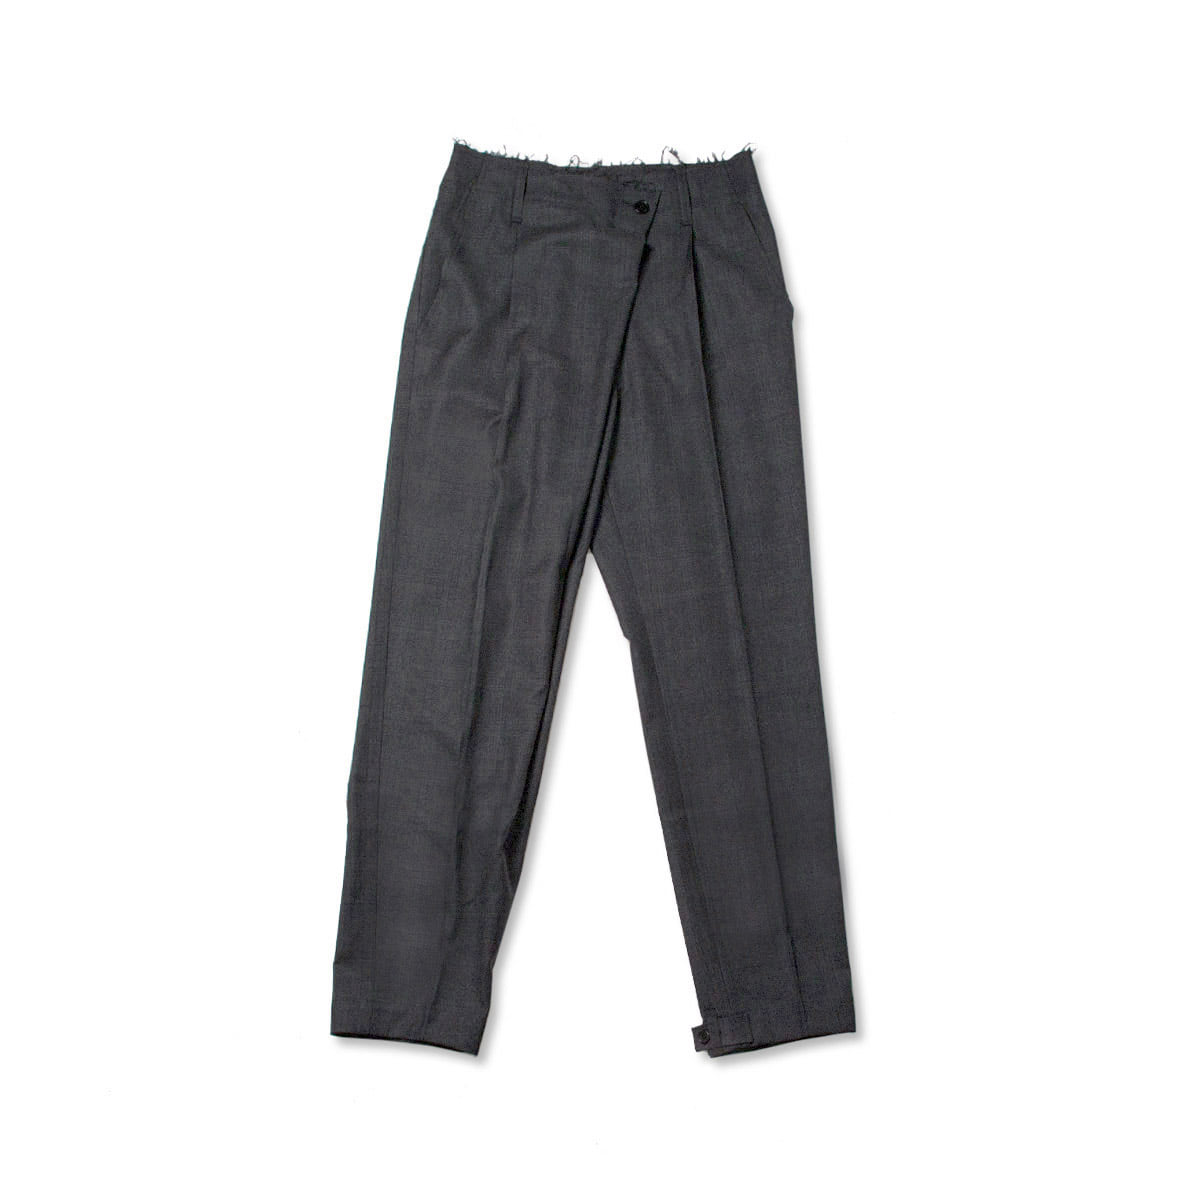 [GAKURO] WRAP PANTS 'GREY CHECK'